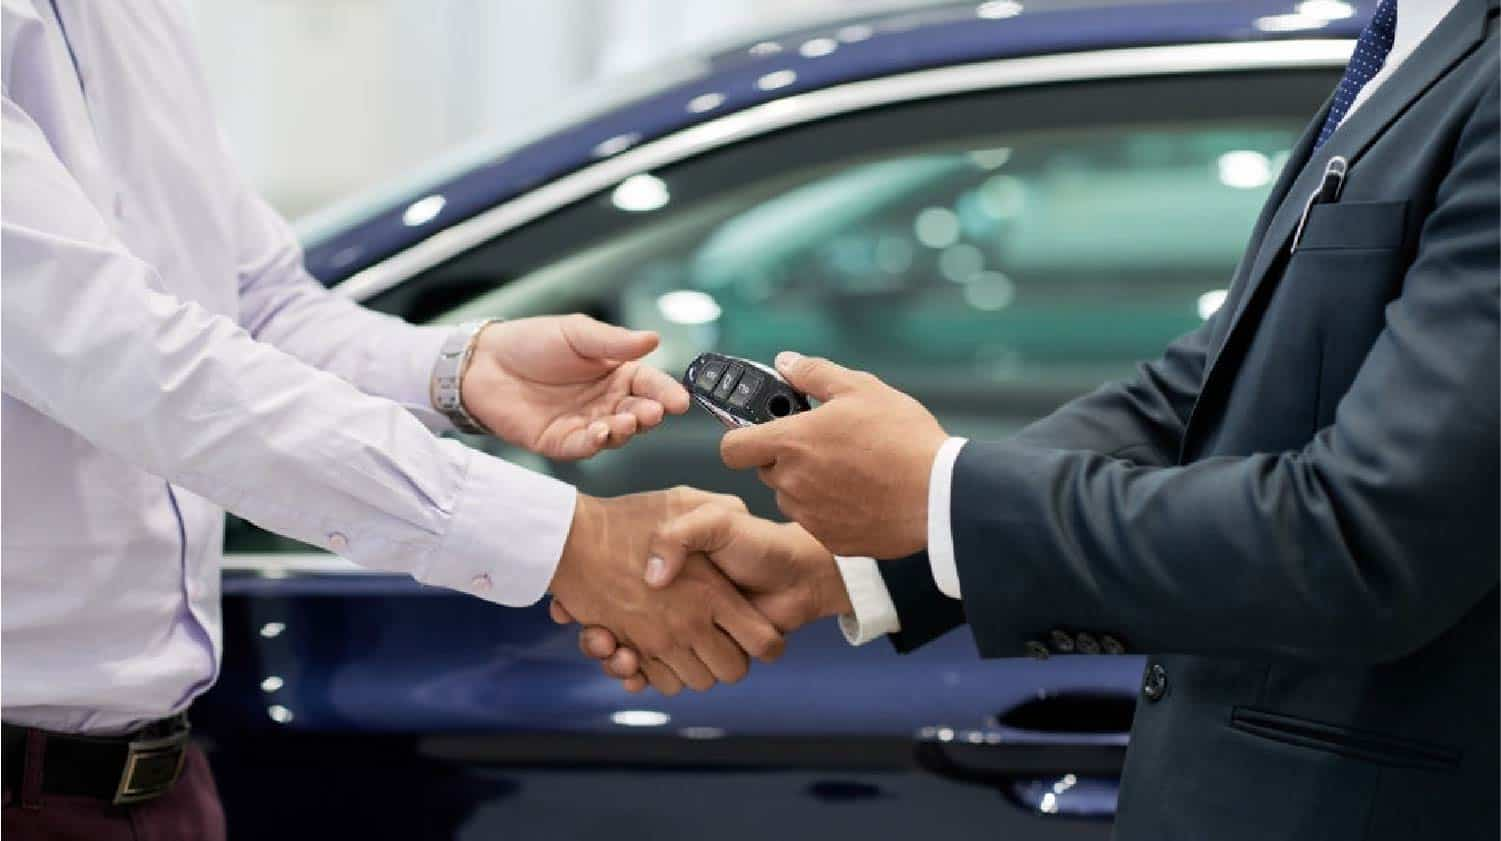 Top 10 Crucial Things to Do When Buying a New Car